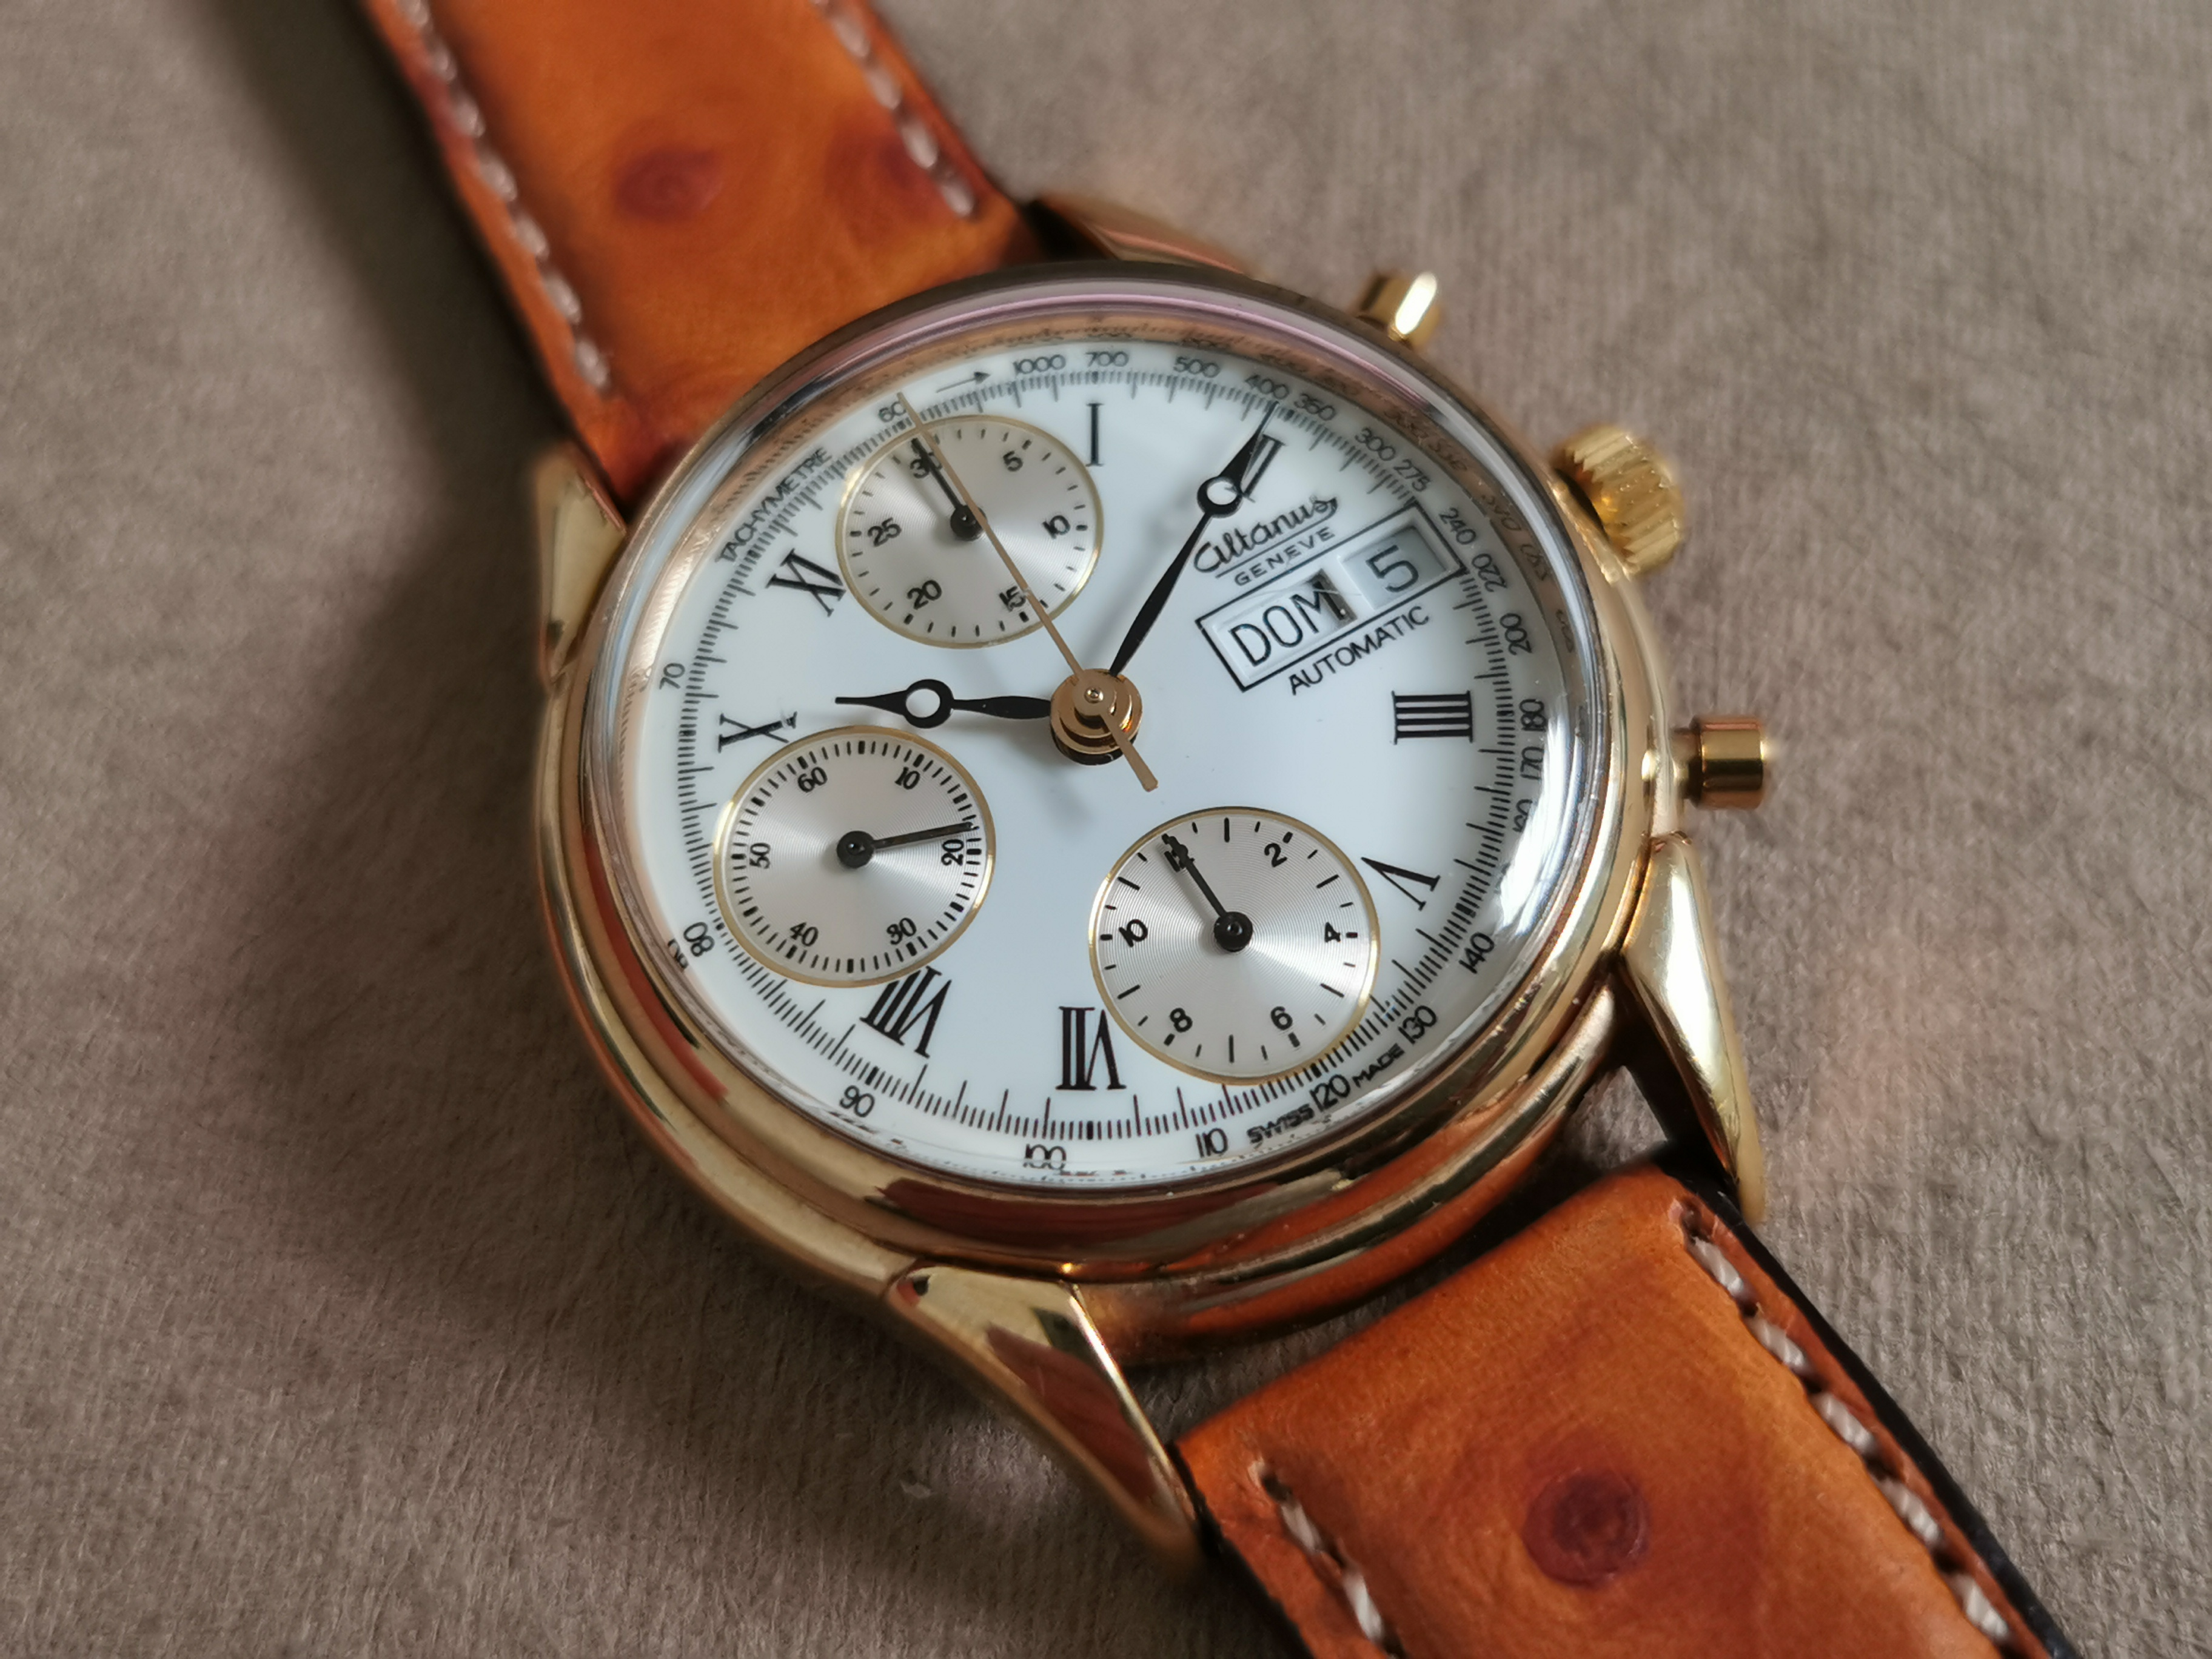 Altanus Chronograph automatic gold plated day date automatic caliber 7750 – men's watch like new | San Giorgio a Cremano